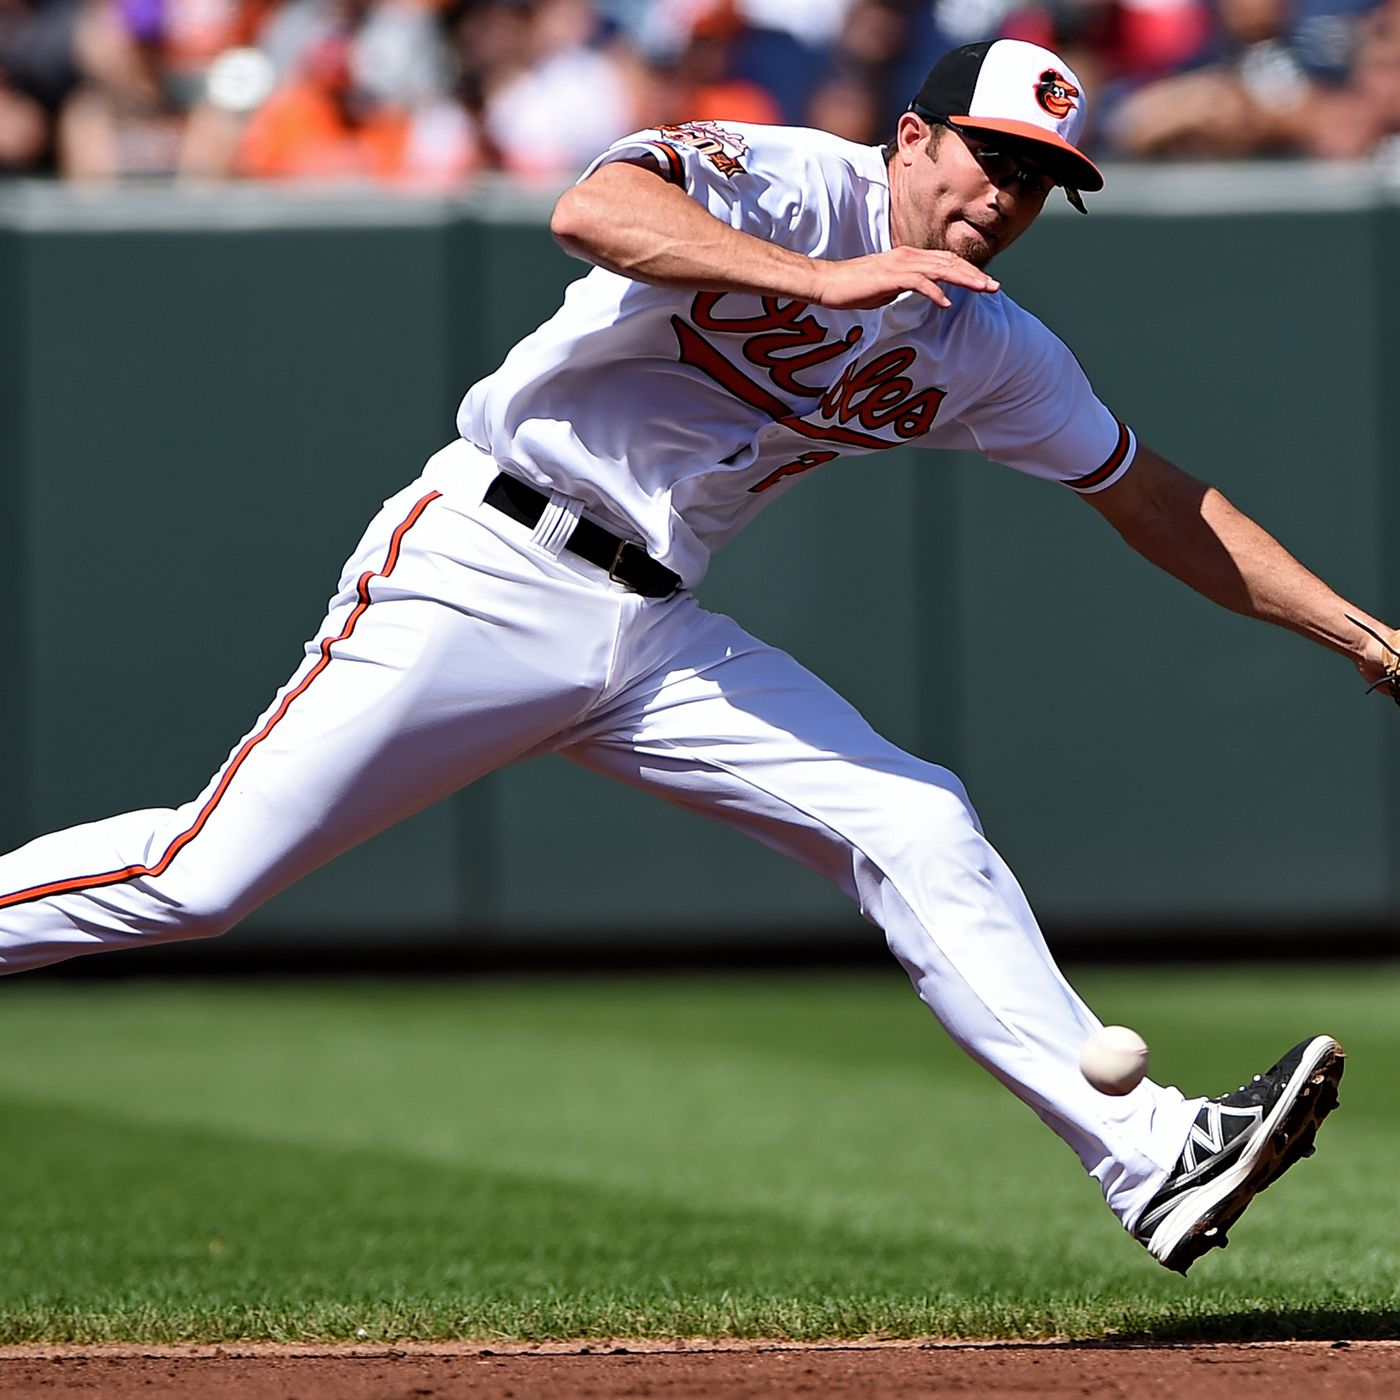 Can the Orioles afford to not re-sign J.J. Hardy? - Camden Chat